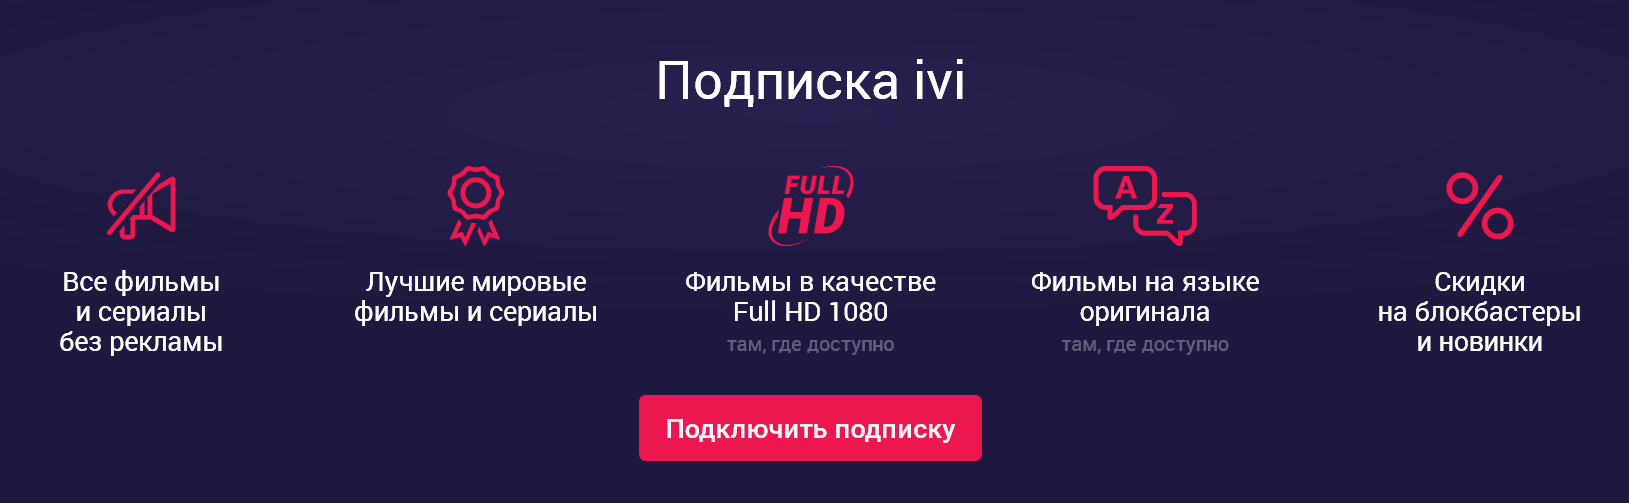 IVI.ru🔴On ANY account Promocode/Subscription 30days №5